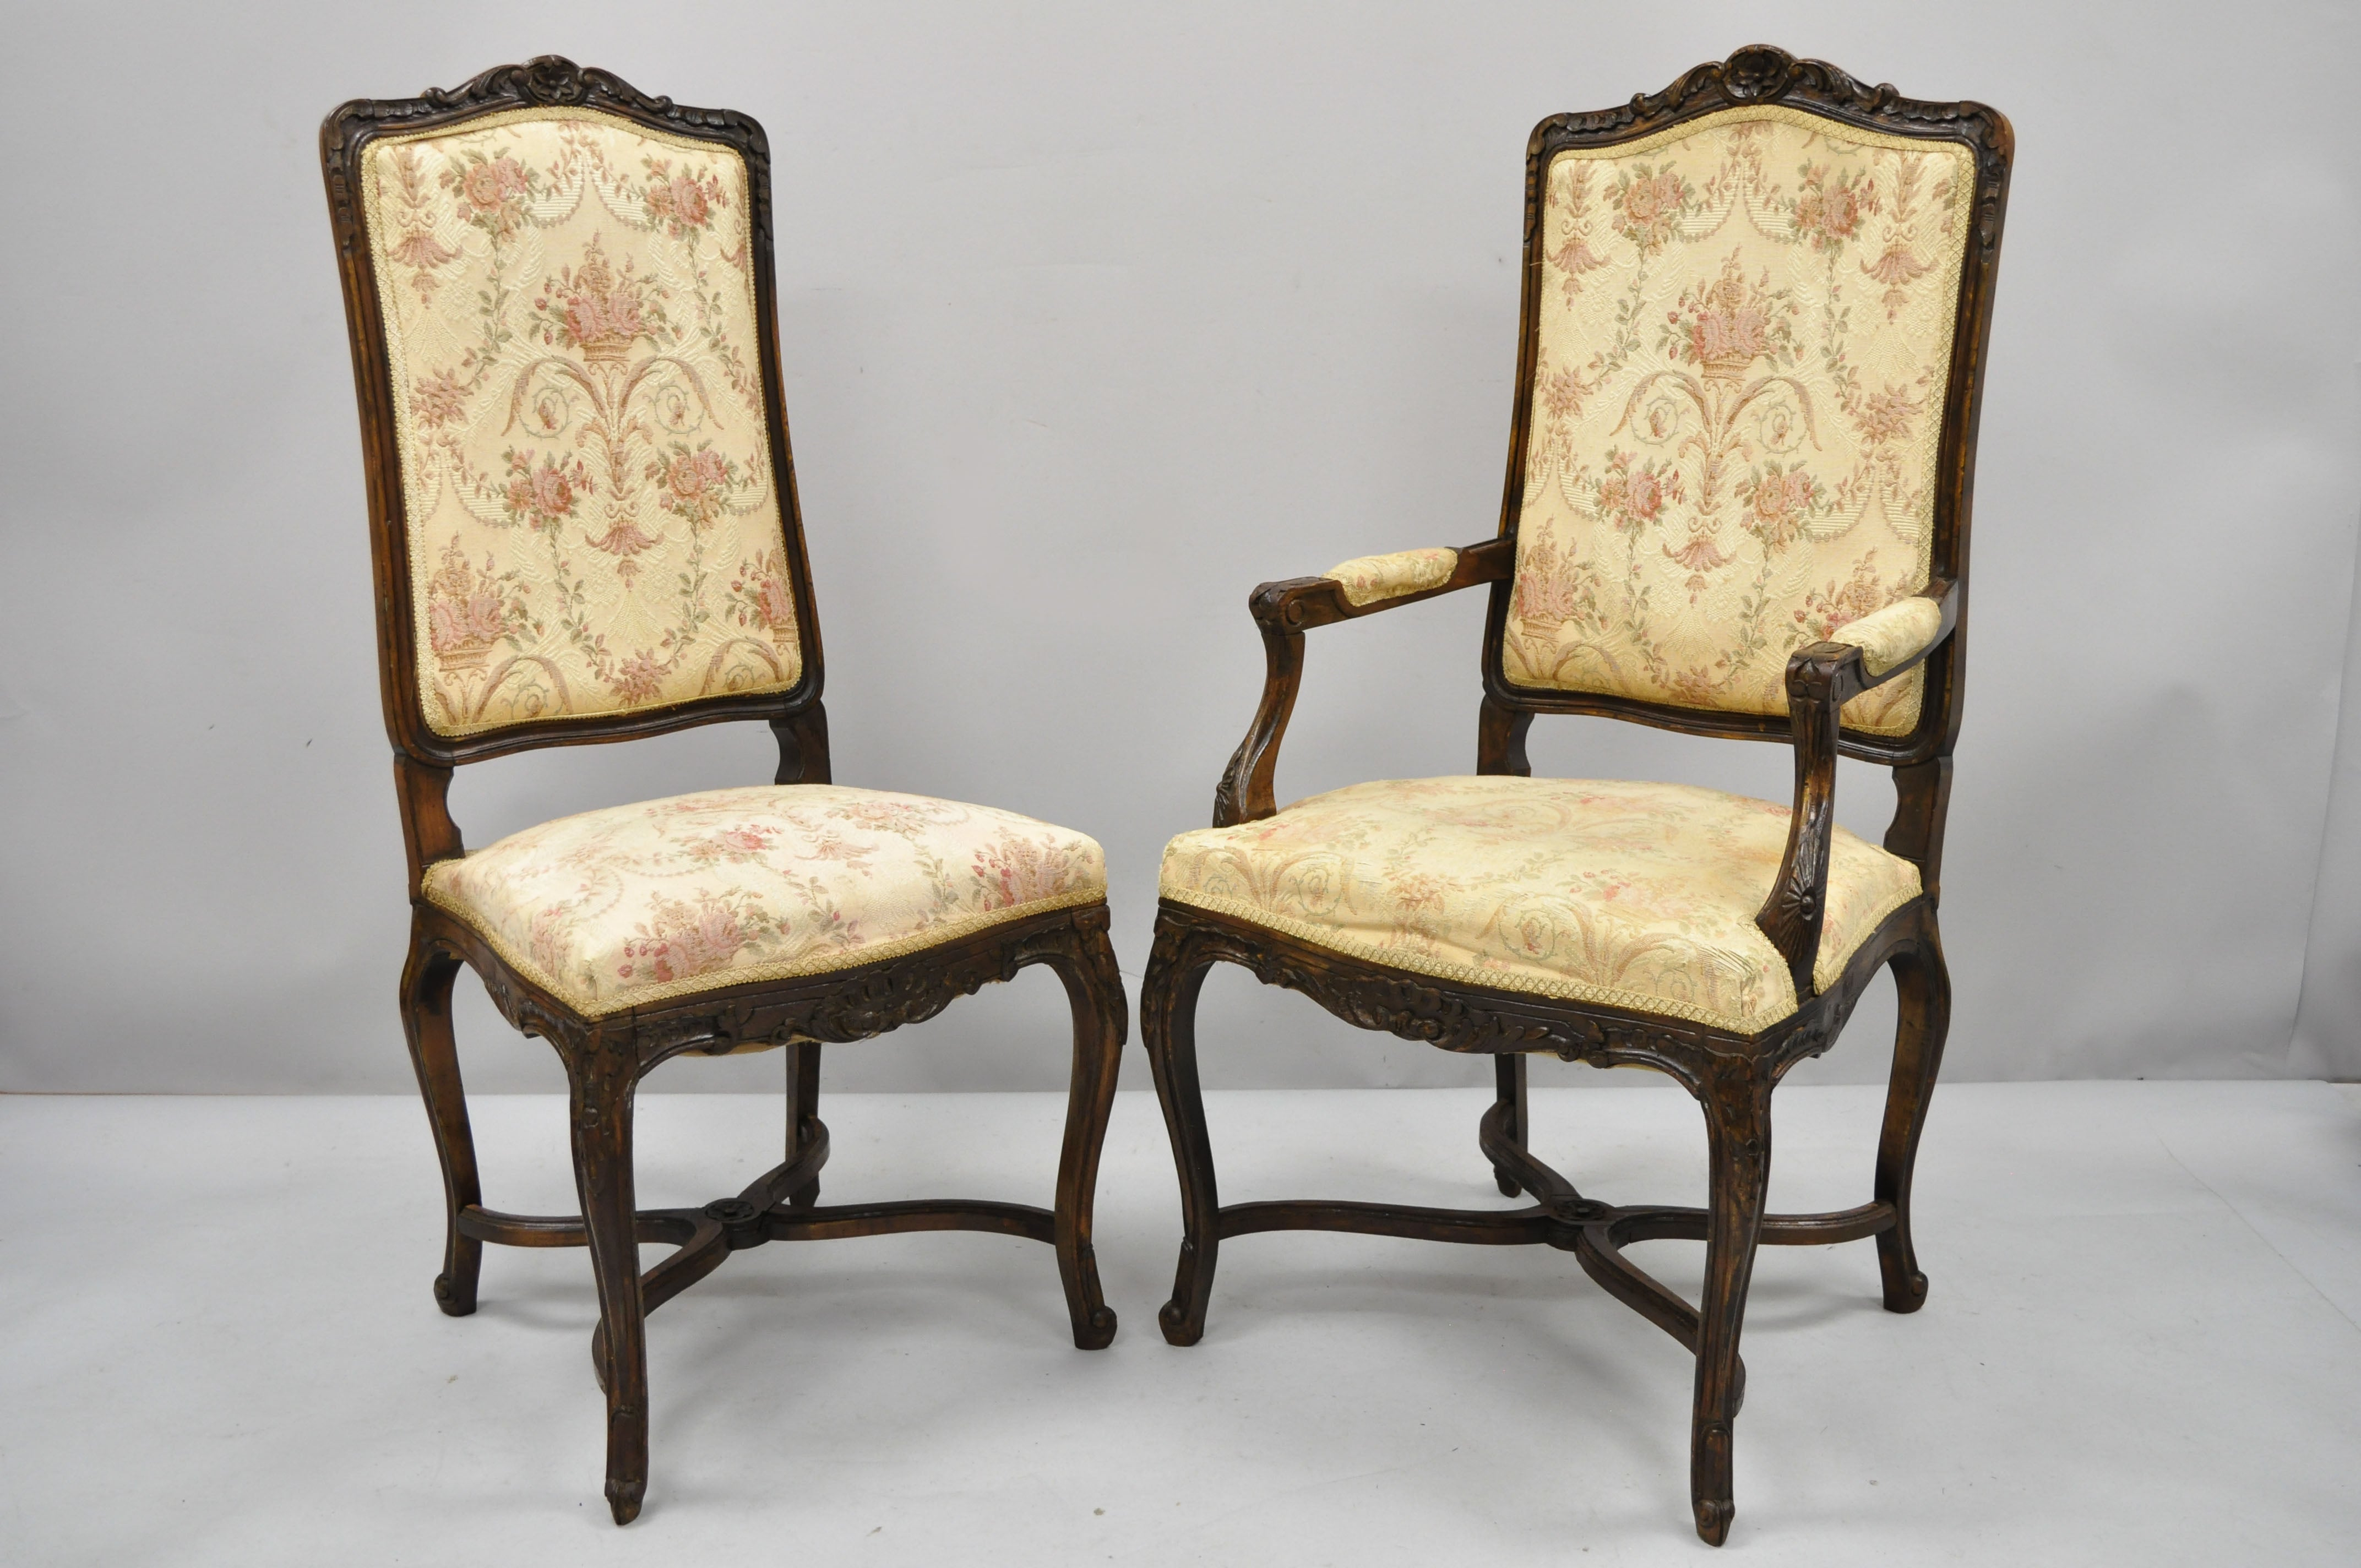 6 Vintage French Provincial Louis Xv Country Style Upholstered Dining Chairs Set For Sale At 1stdibs